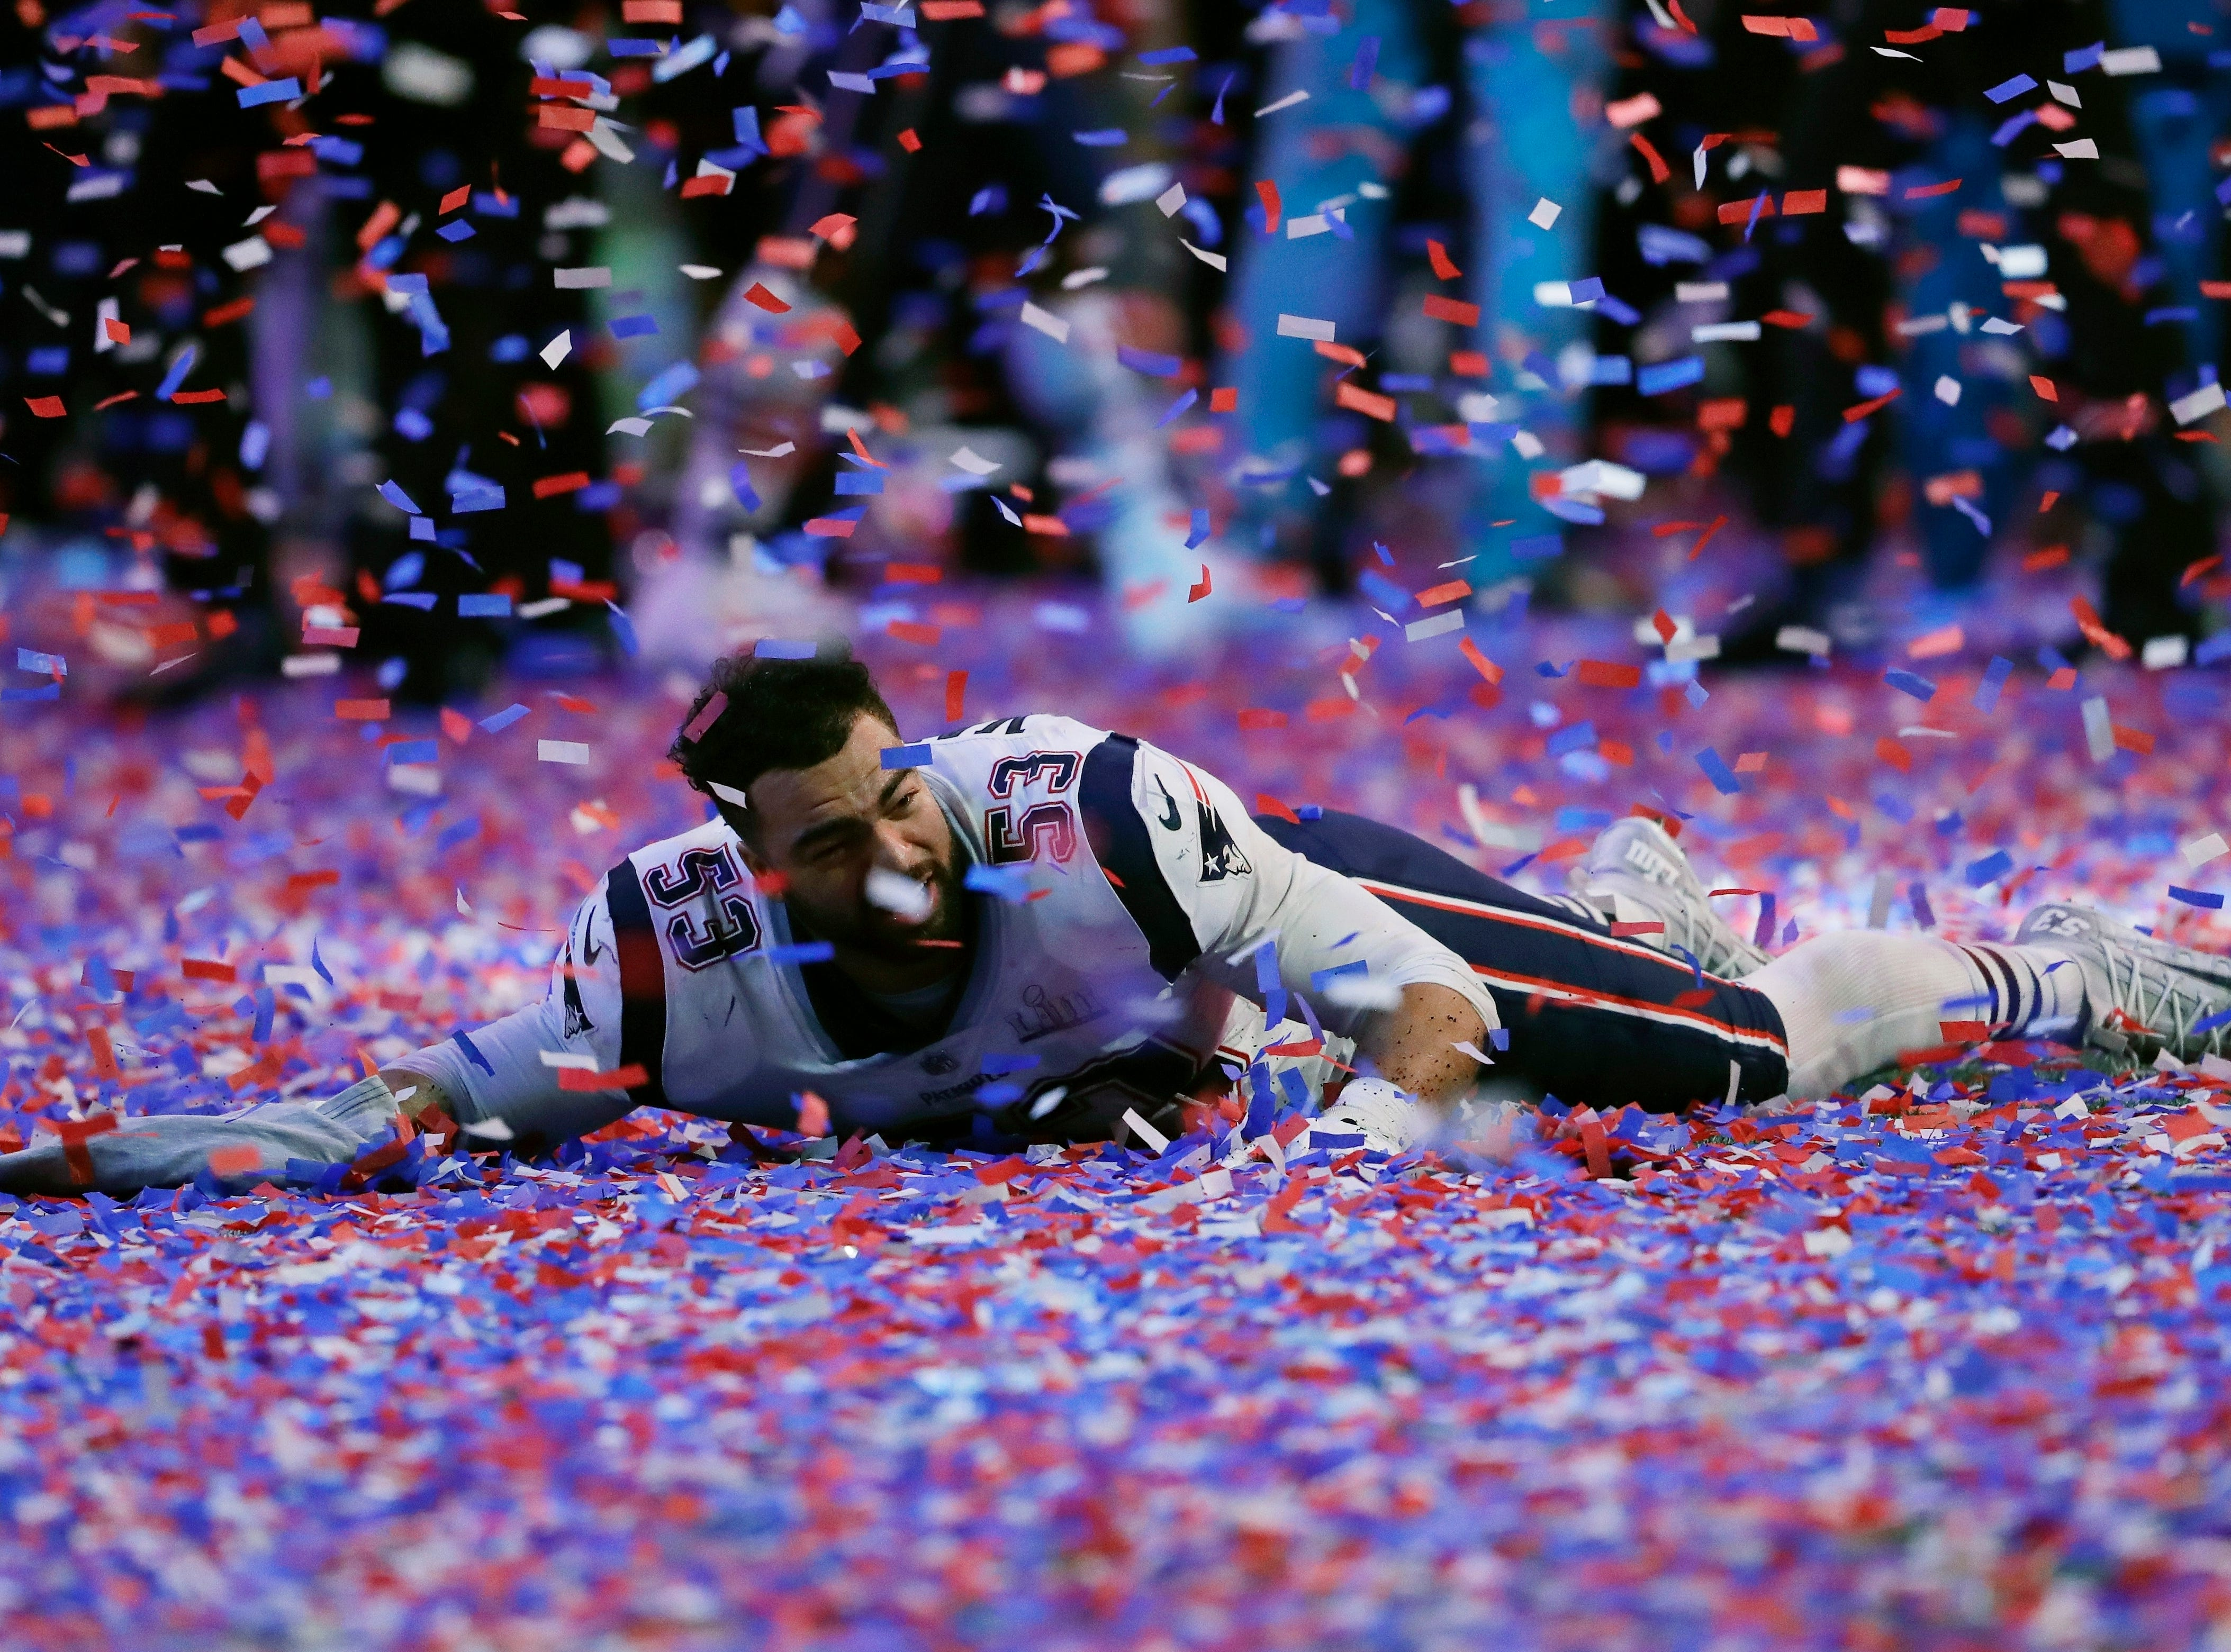 New England Patriots' Kyle Van Noy celebrates in confetti on the turf after the game.